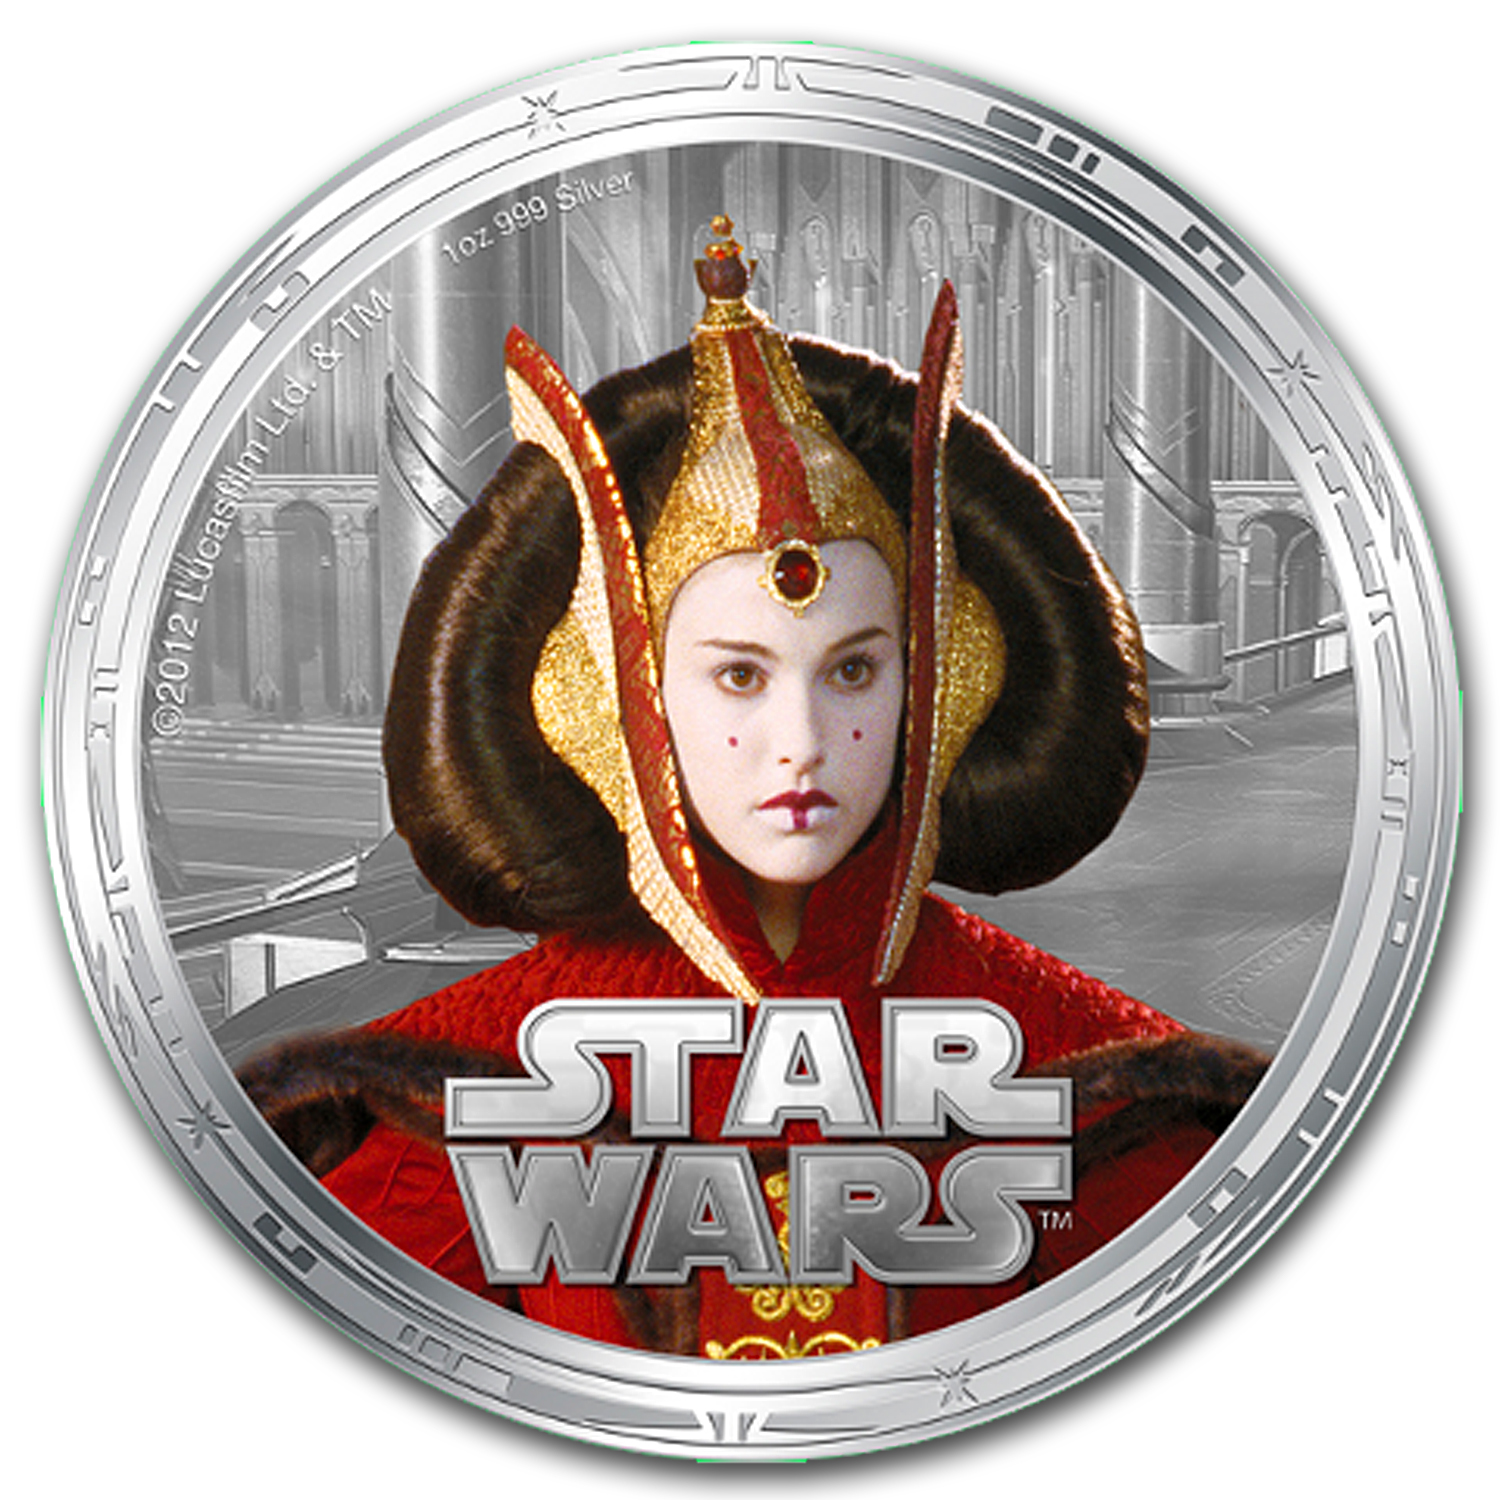 2012 8-Coin 4x Silver & 4x Gold Plated Star Wars Set (Series 2)